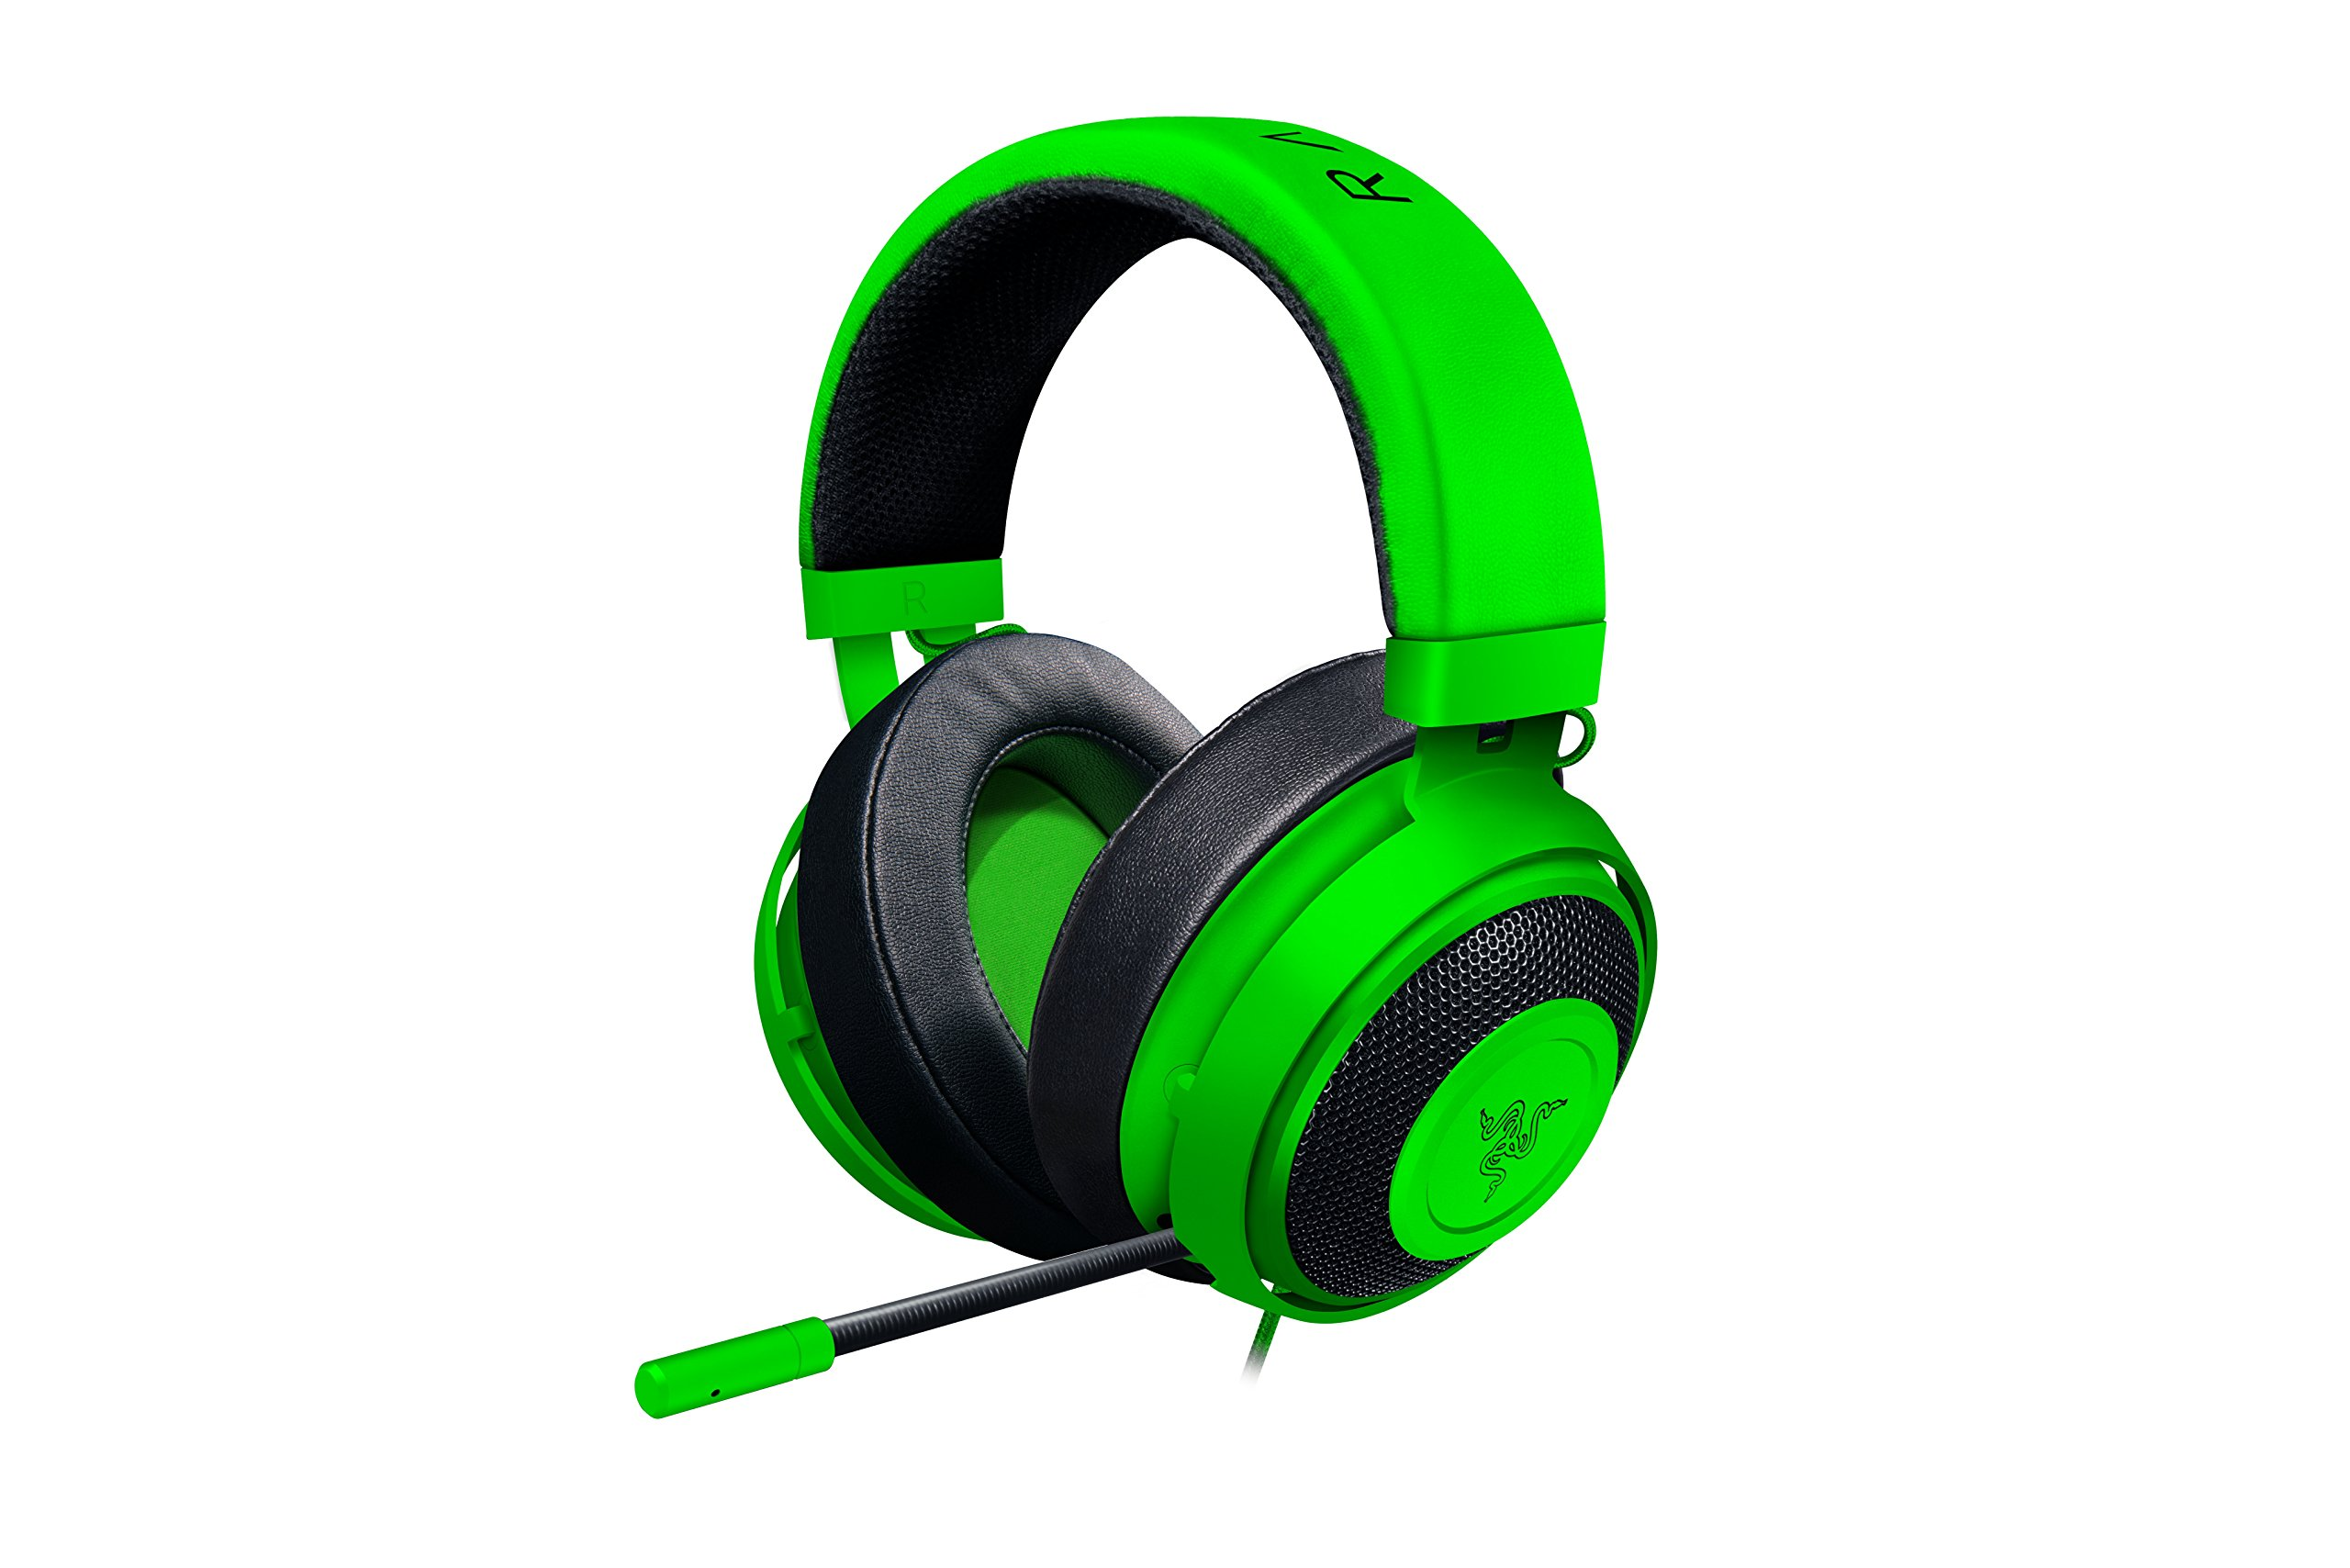 Razer Kraken Pro V2: Lightweight Aluminum Headband - Retractable Mic - In-Line Remote - Gaming Headset Works with PC, PS4, Xbox One, Switch, & Mobile Devices - Green by Razer (Image #1)